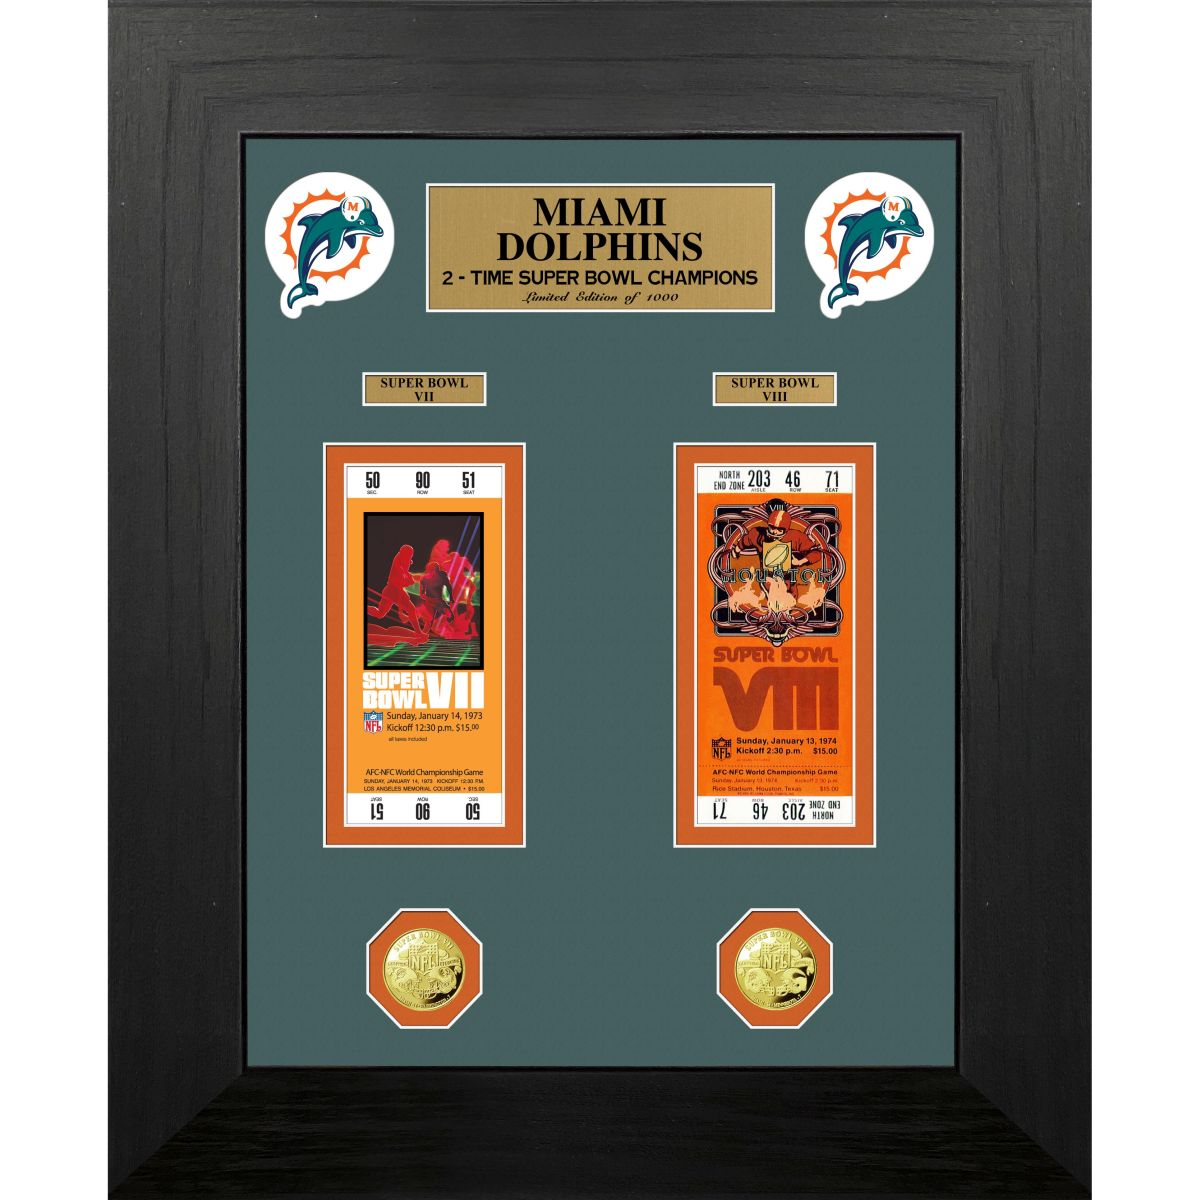 Miami Dolphins Super Bowl Champions Deluxe Gold Coin & Ticket Collection